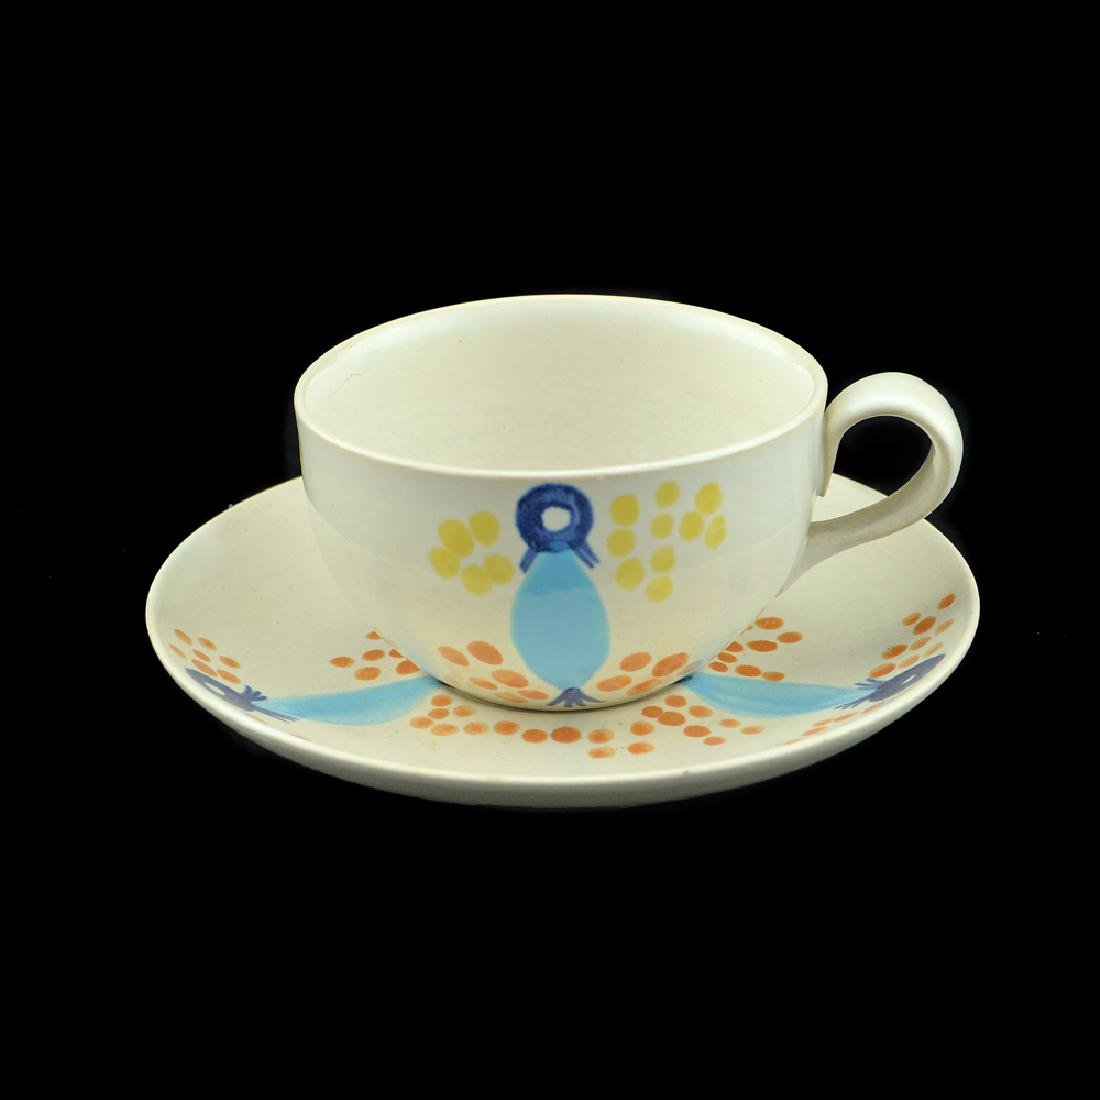 Eva Zeisel, Monmouth Pals Cup and Saucer